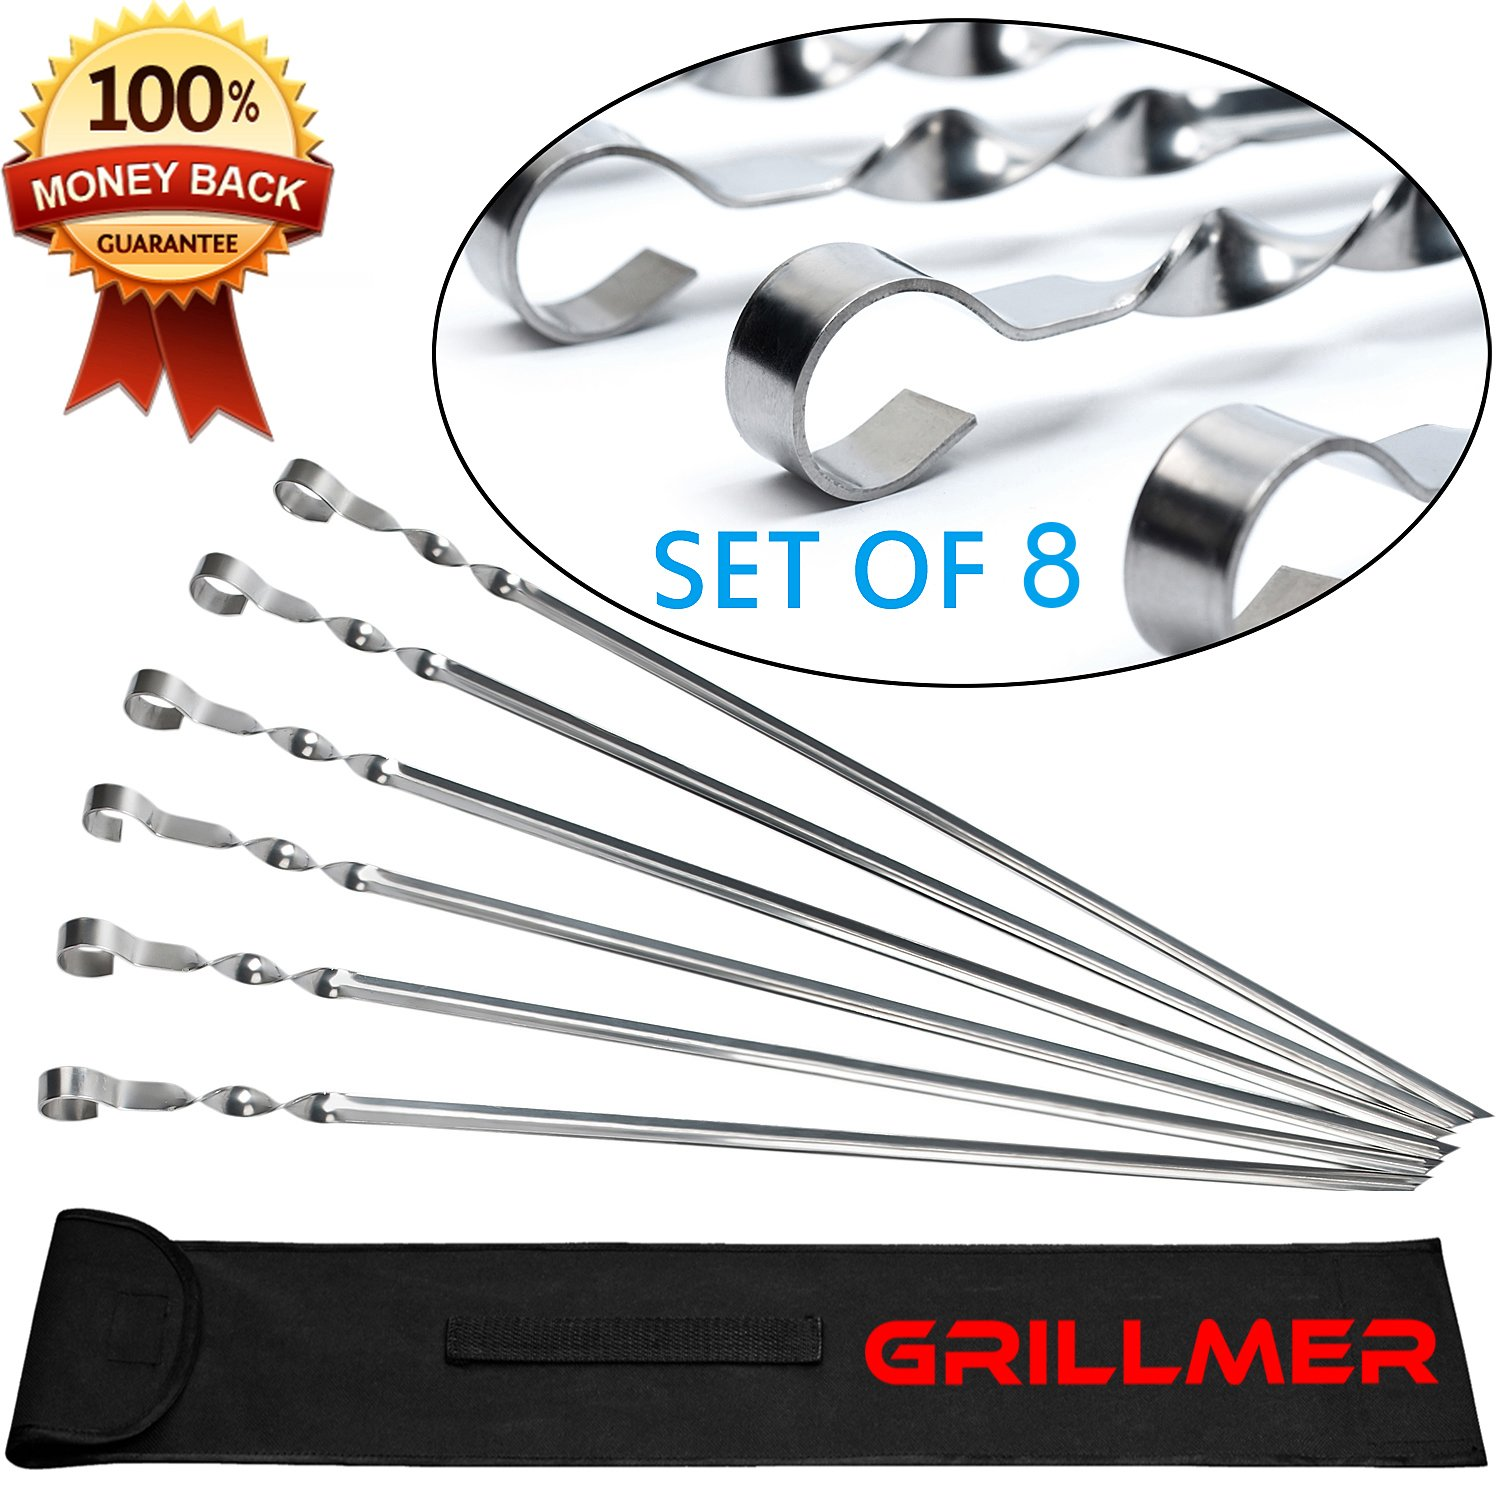 "Skewers 23"" Large【Upgraded】Shish Kabob Skewers Stainless Steel Long & V-Shape Reusable Kabob Sticks Barbecue BBQ Skewers For Grilling Set of 8 Piece Heavy Duty Wide BBQ Sticks Ideal for Shish Kebab"